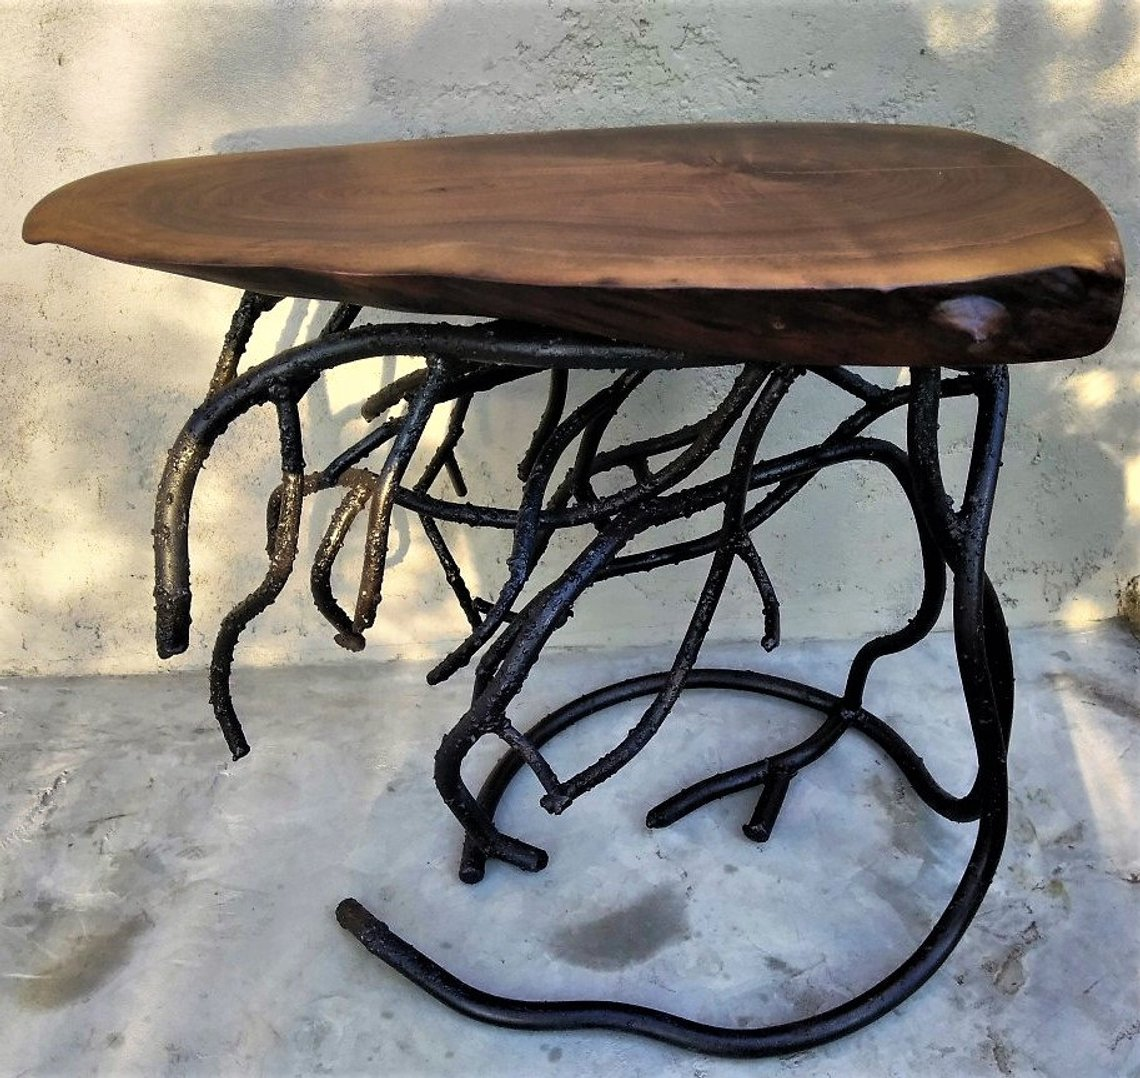 forged root metal table base and live edge black walnut wood etsy kyfy timor trunk accent bathroom vanities end with usb charger antique white coffee sets blue porcelain lamps